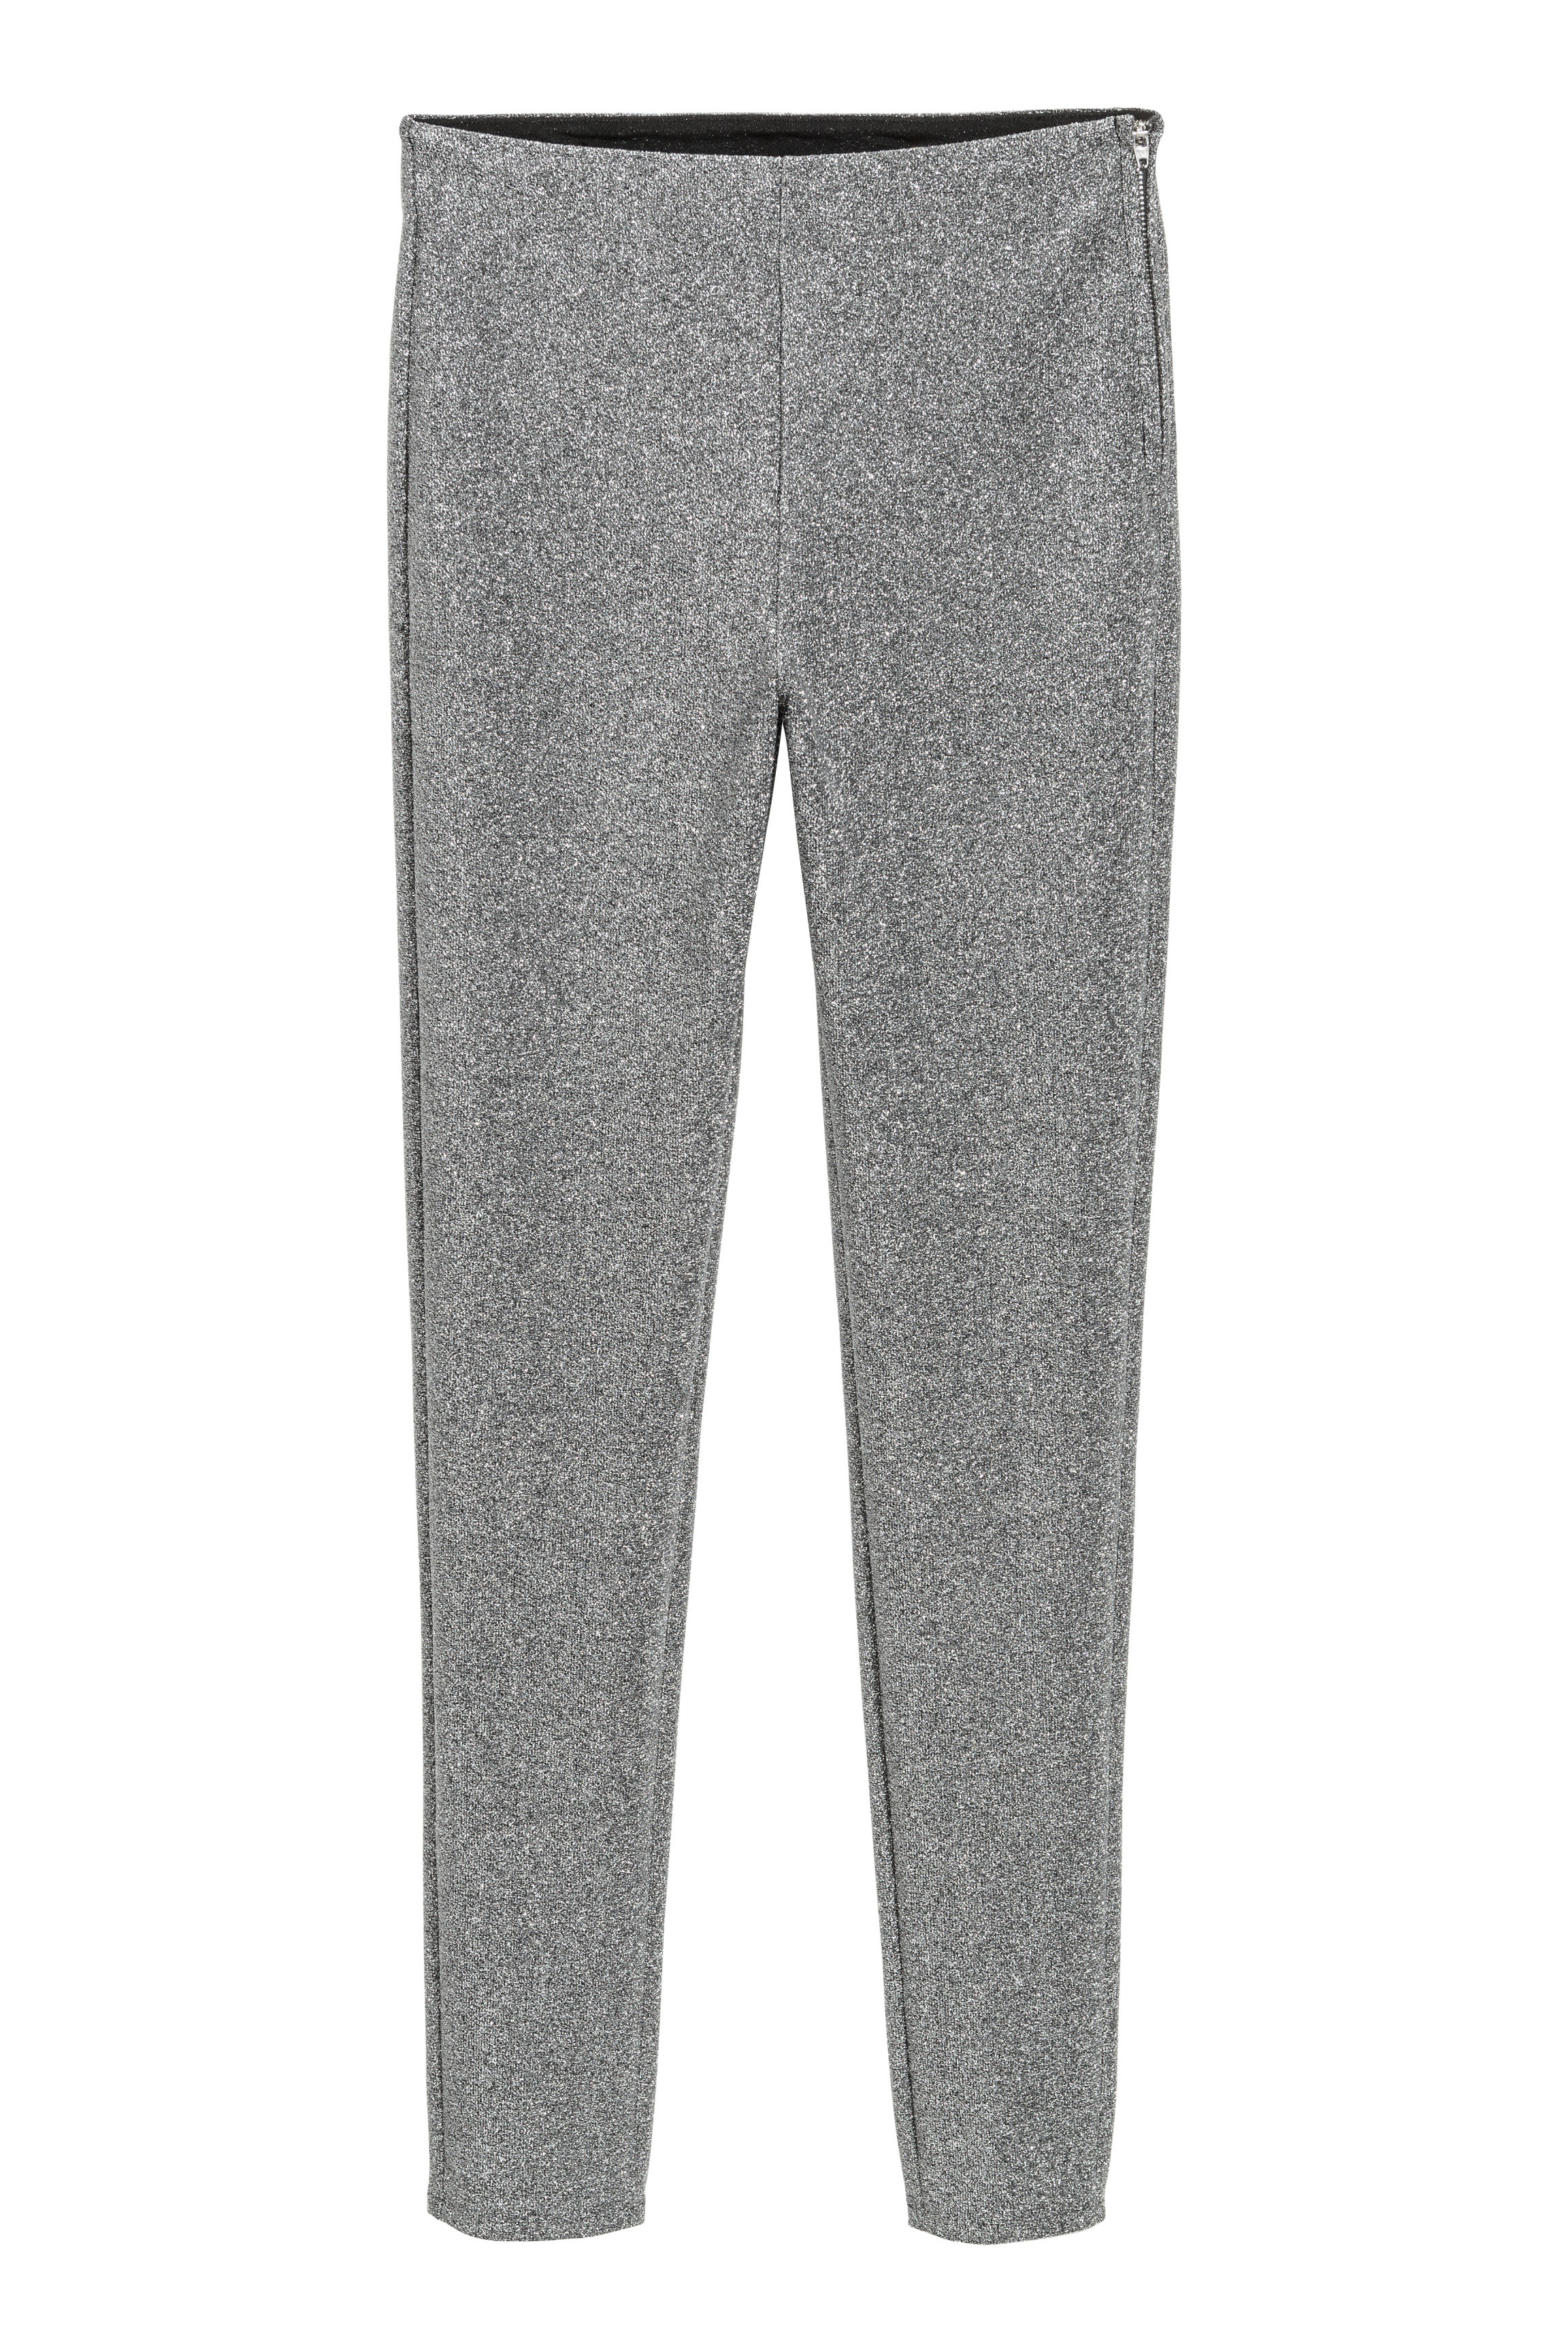 b5203fc5 Glittery Pants - Silver-colored/glittery - | H&M US